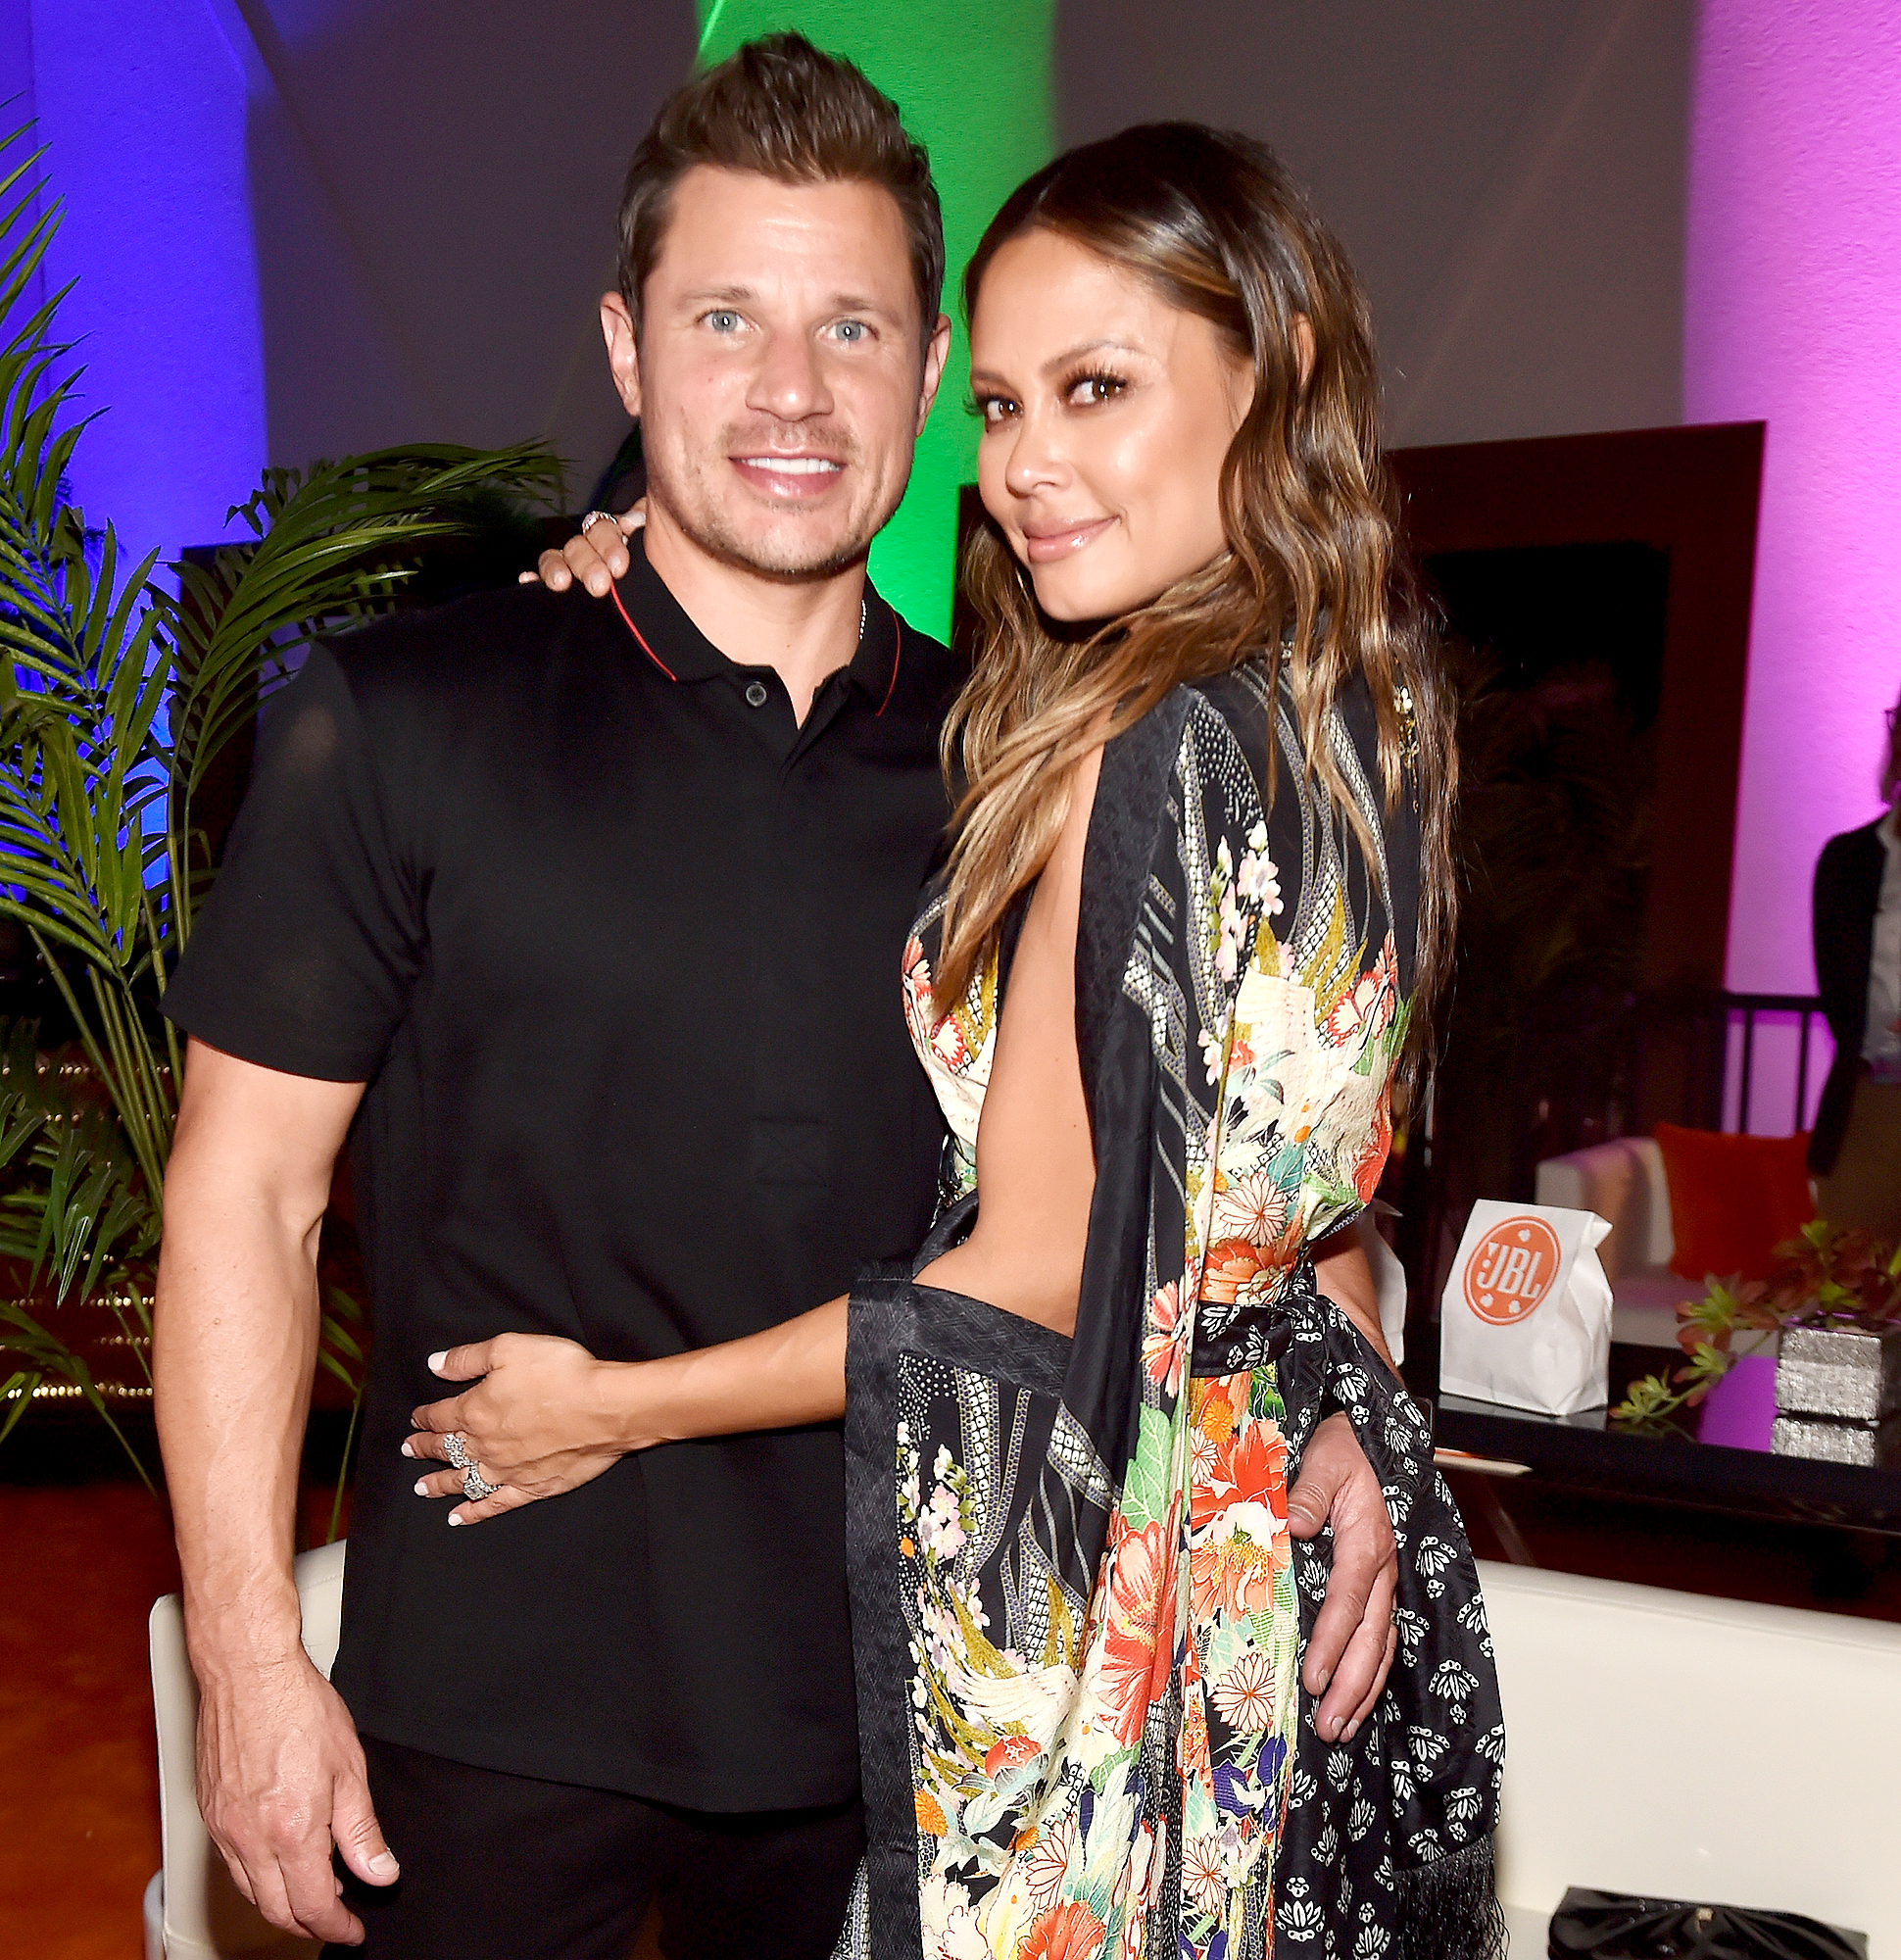 Nick-Lachey-and-Vanessa-Lachey - Nick Lachey and Vanessa Lachey attended JBL Fest on October 19, 2018 in Las Vegas, Nevada.